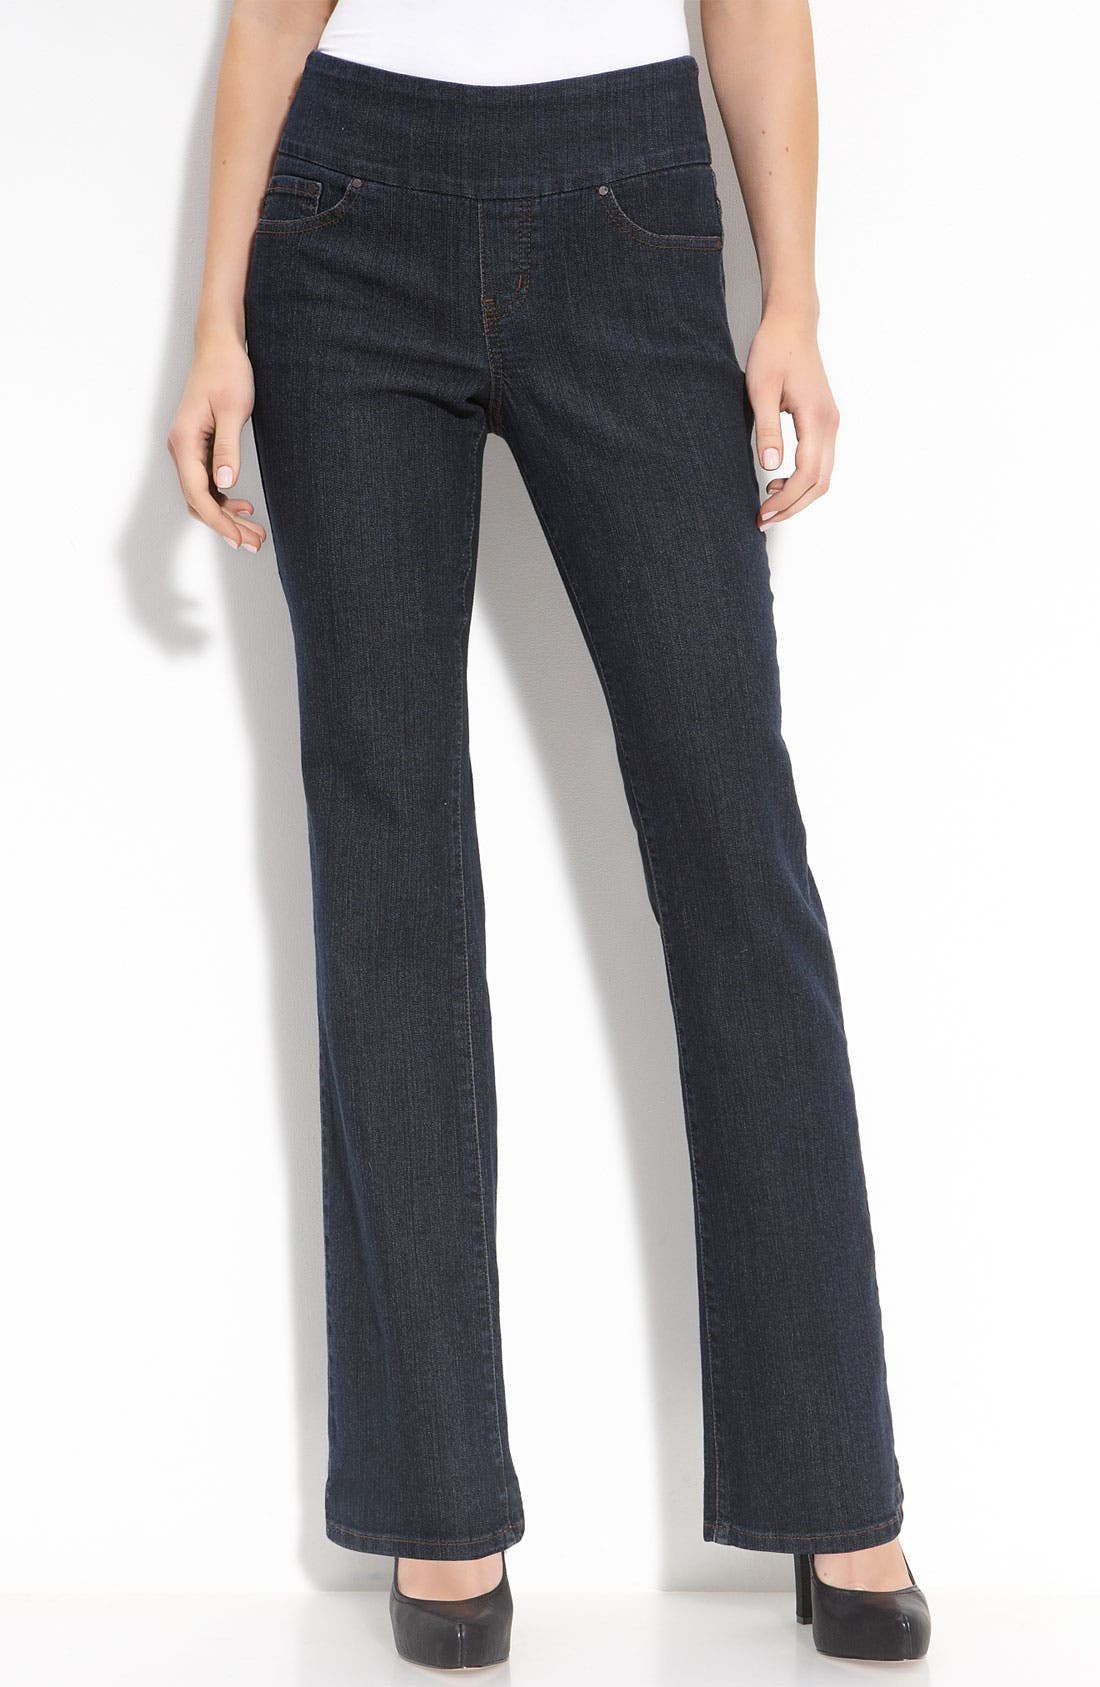 Alternate Image 1 Selected - Jag Jeans 'Paley' Bootcut Jeans